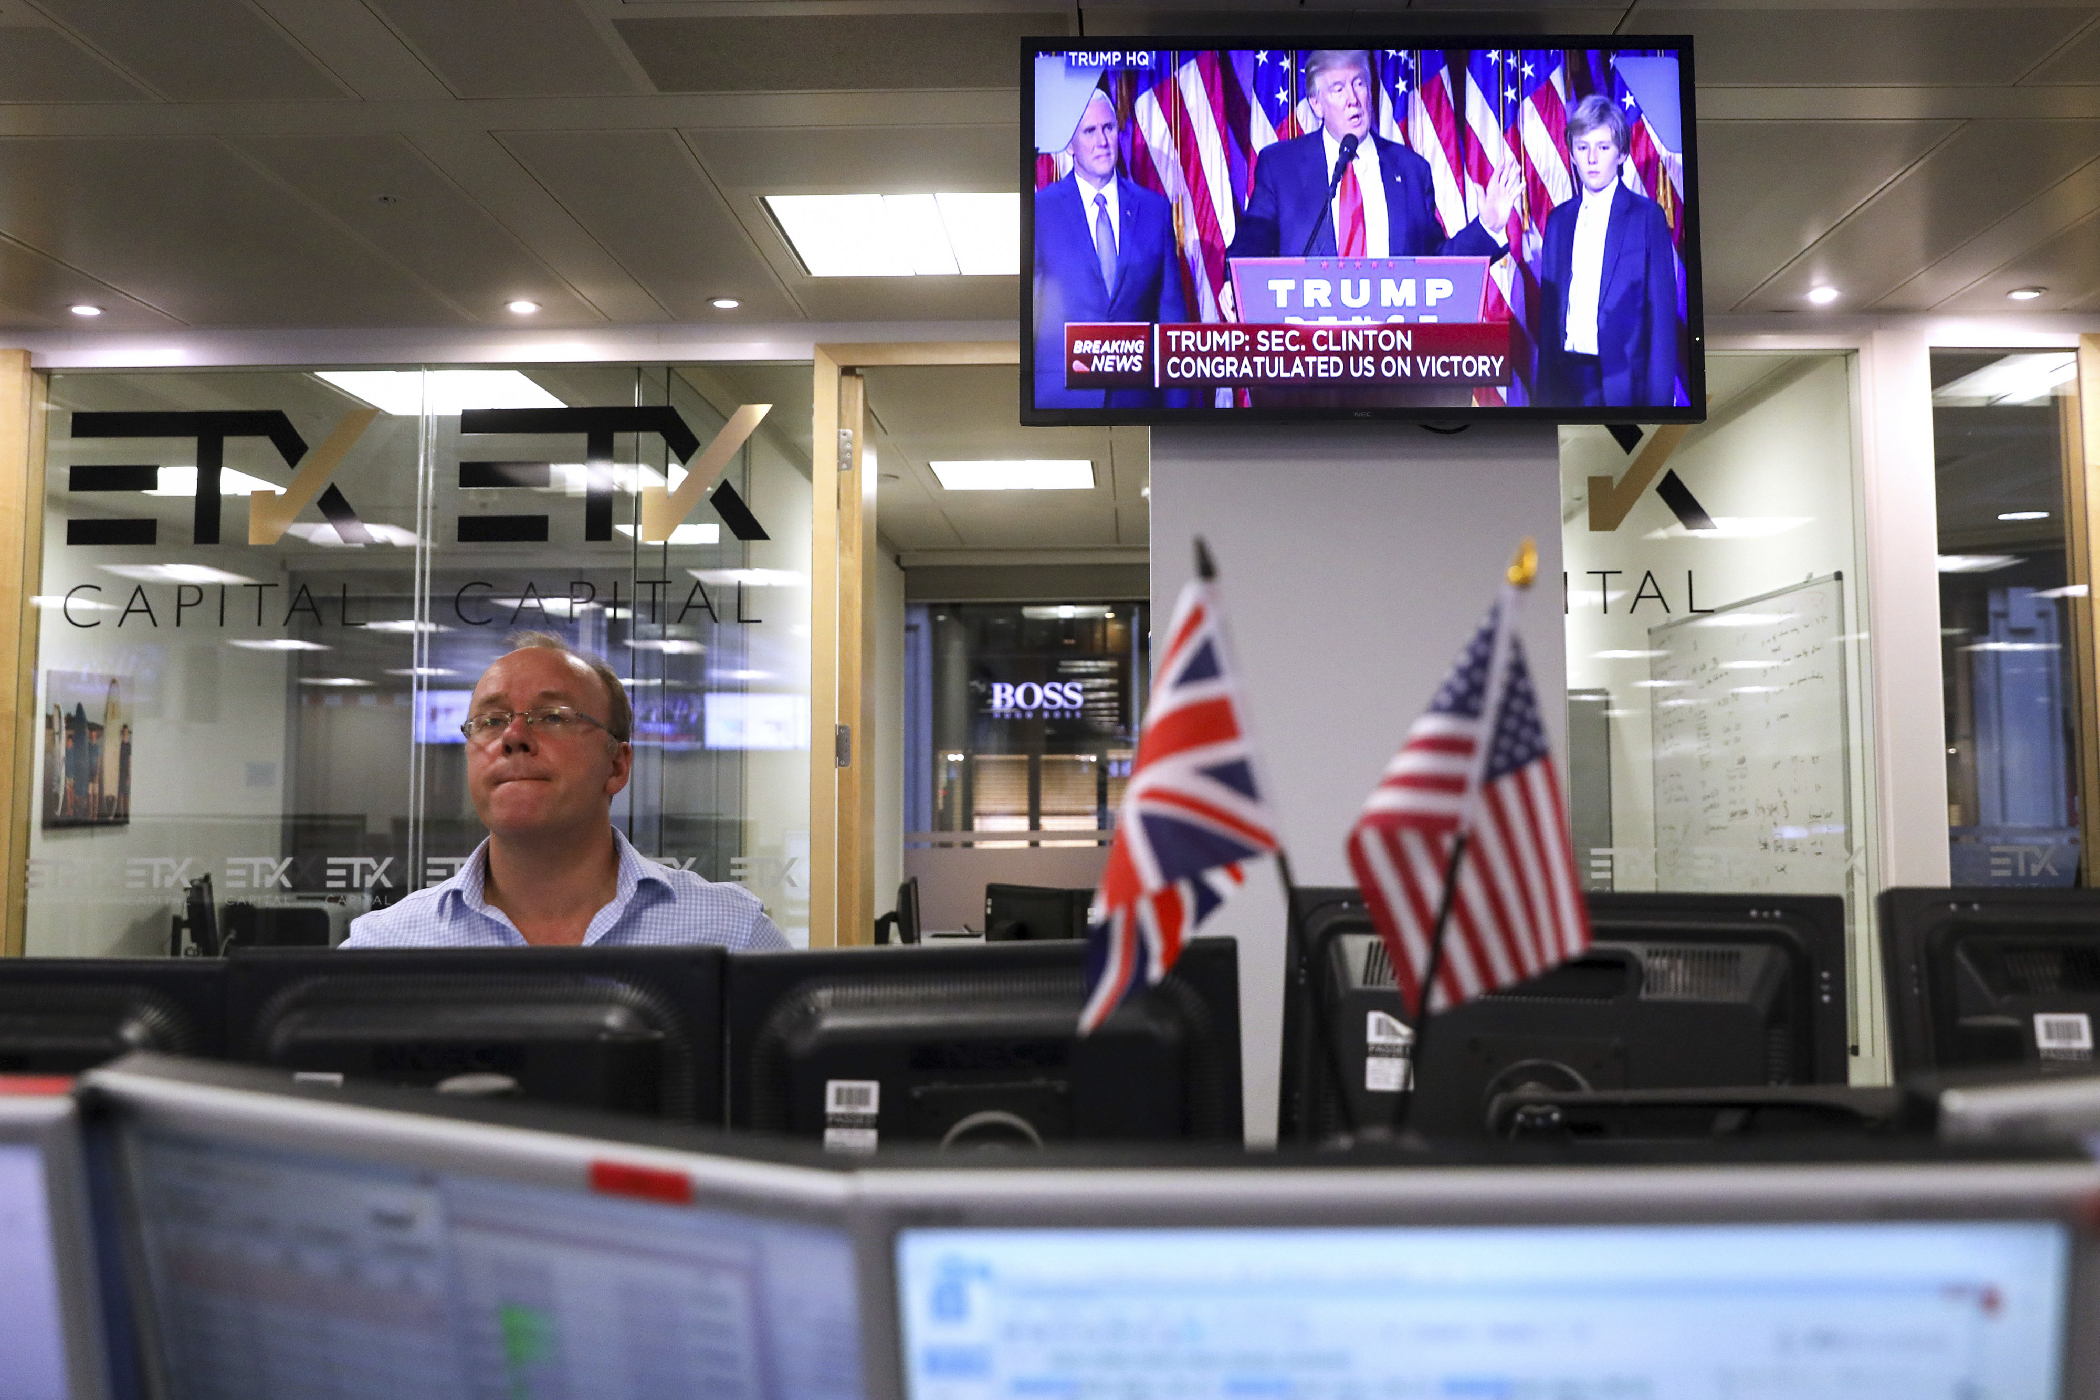 Traders on thefloor at ETX Capital in London watched as Trump was elected. The UK markets suffered huge losses in June, after their own surprise Brexit referendum results sent stocks into a tailspin.